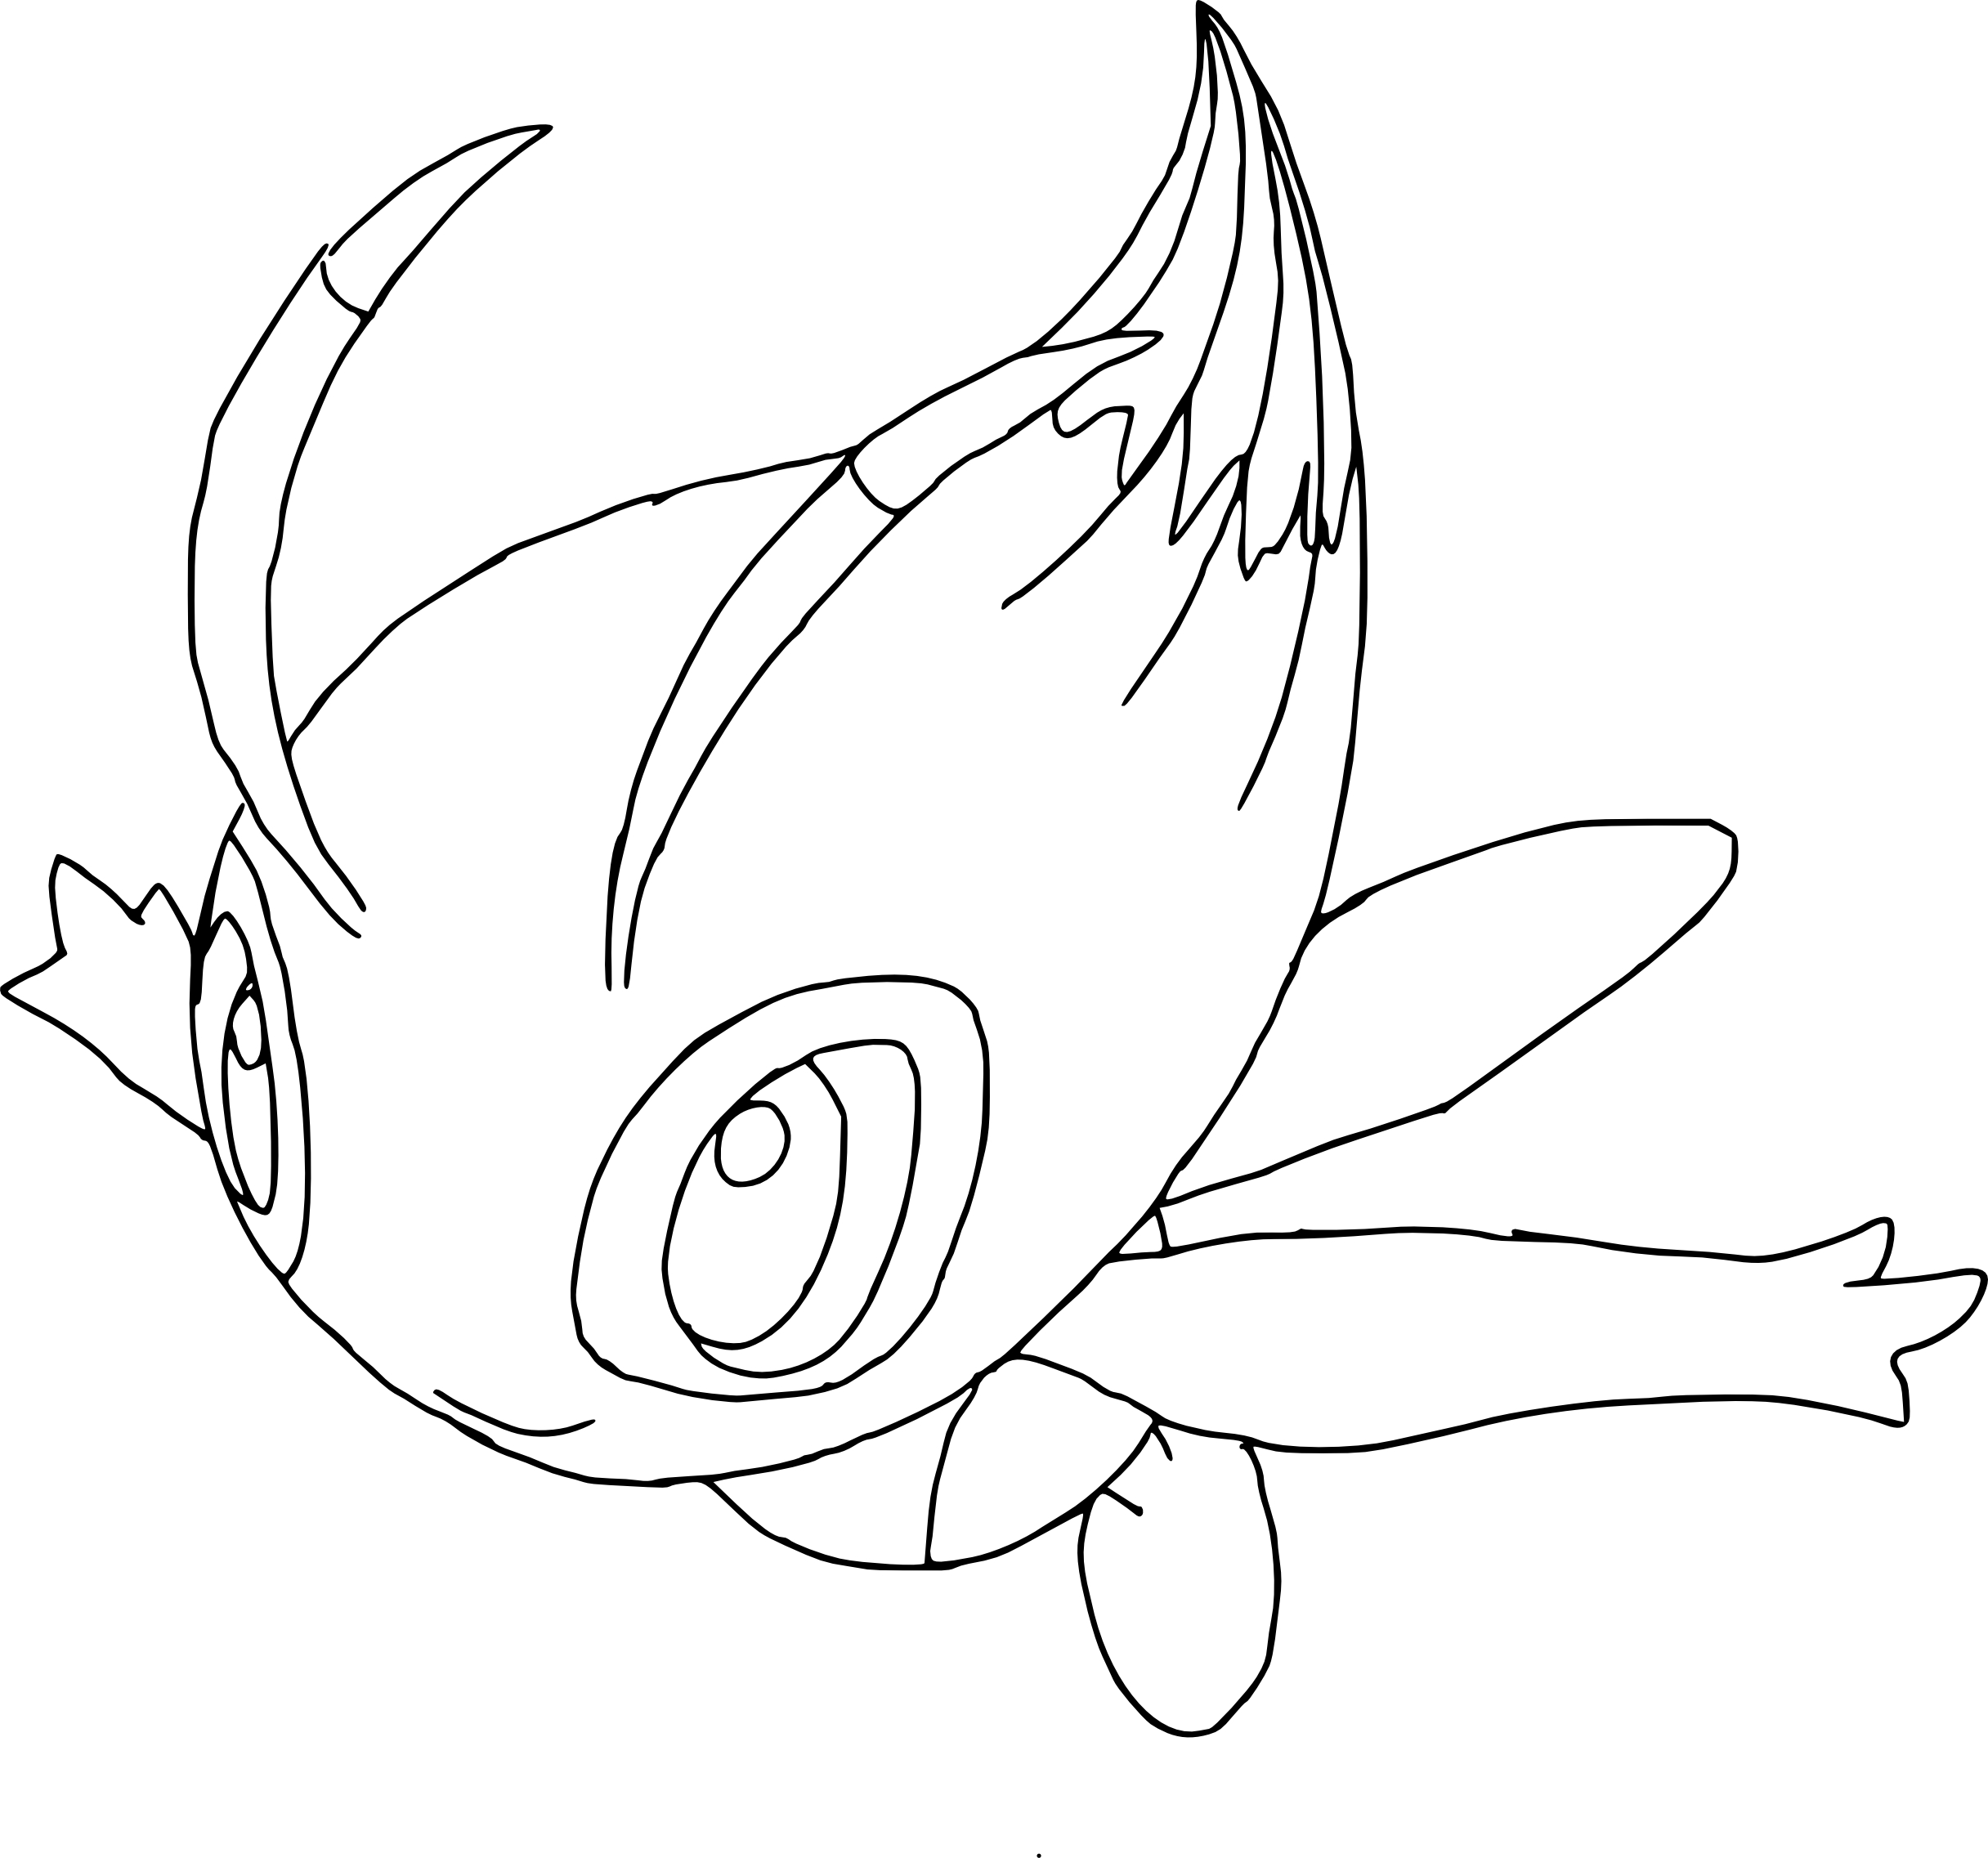 moreover  as well  likewise liloetstitch004 further coloriagecelebi additionally carrossedessin as well  besides batman 3 further coloriageboucheetlangue as well coloriagegnou likewise . on disney coloring pages mario